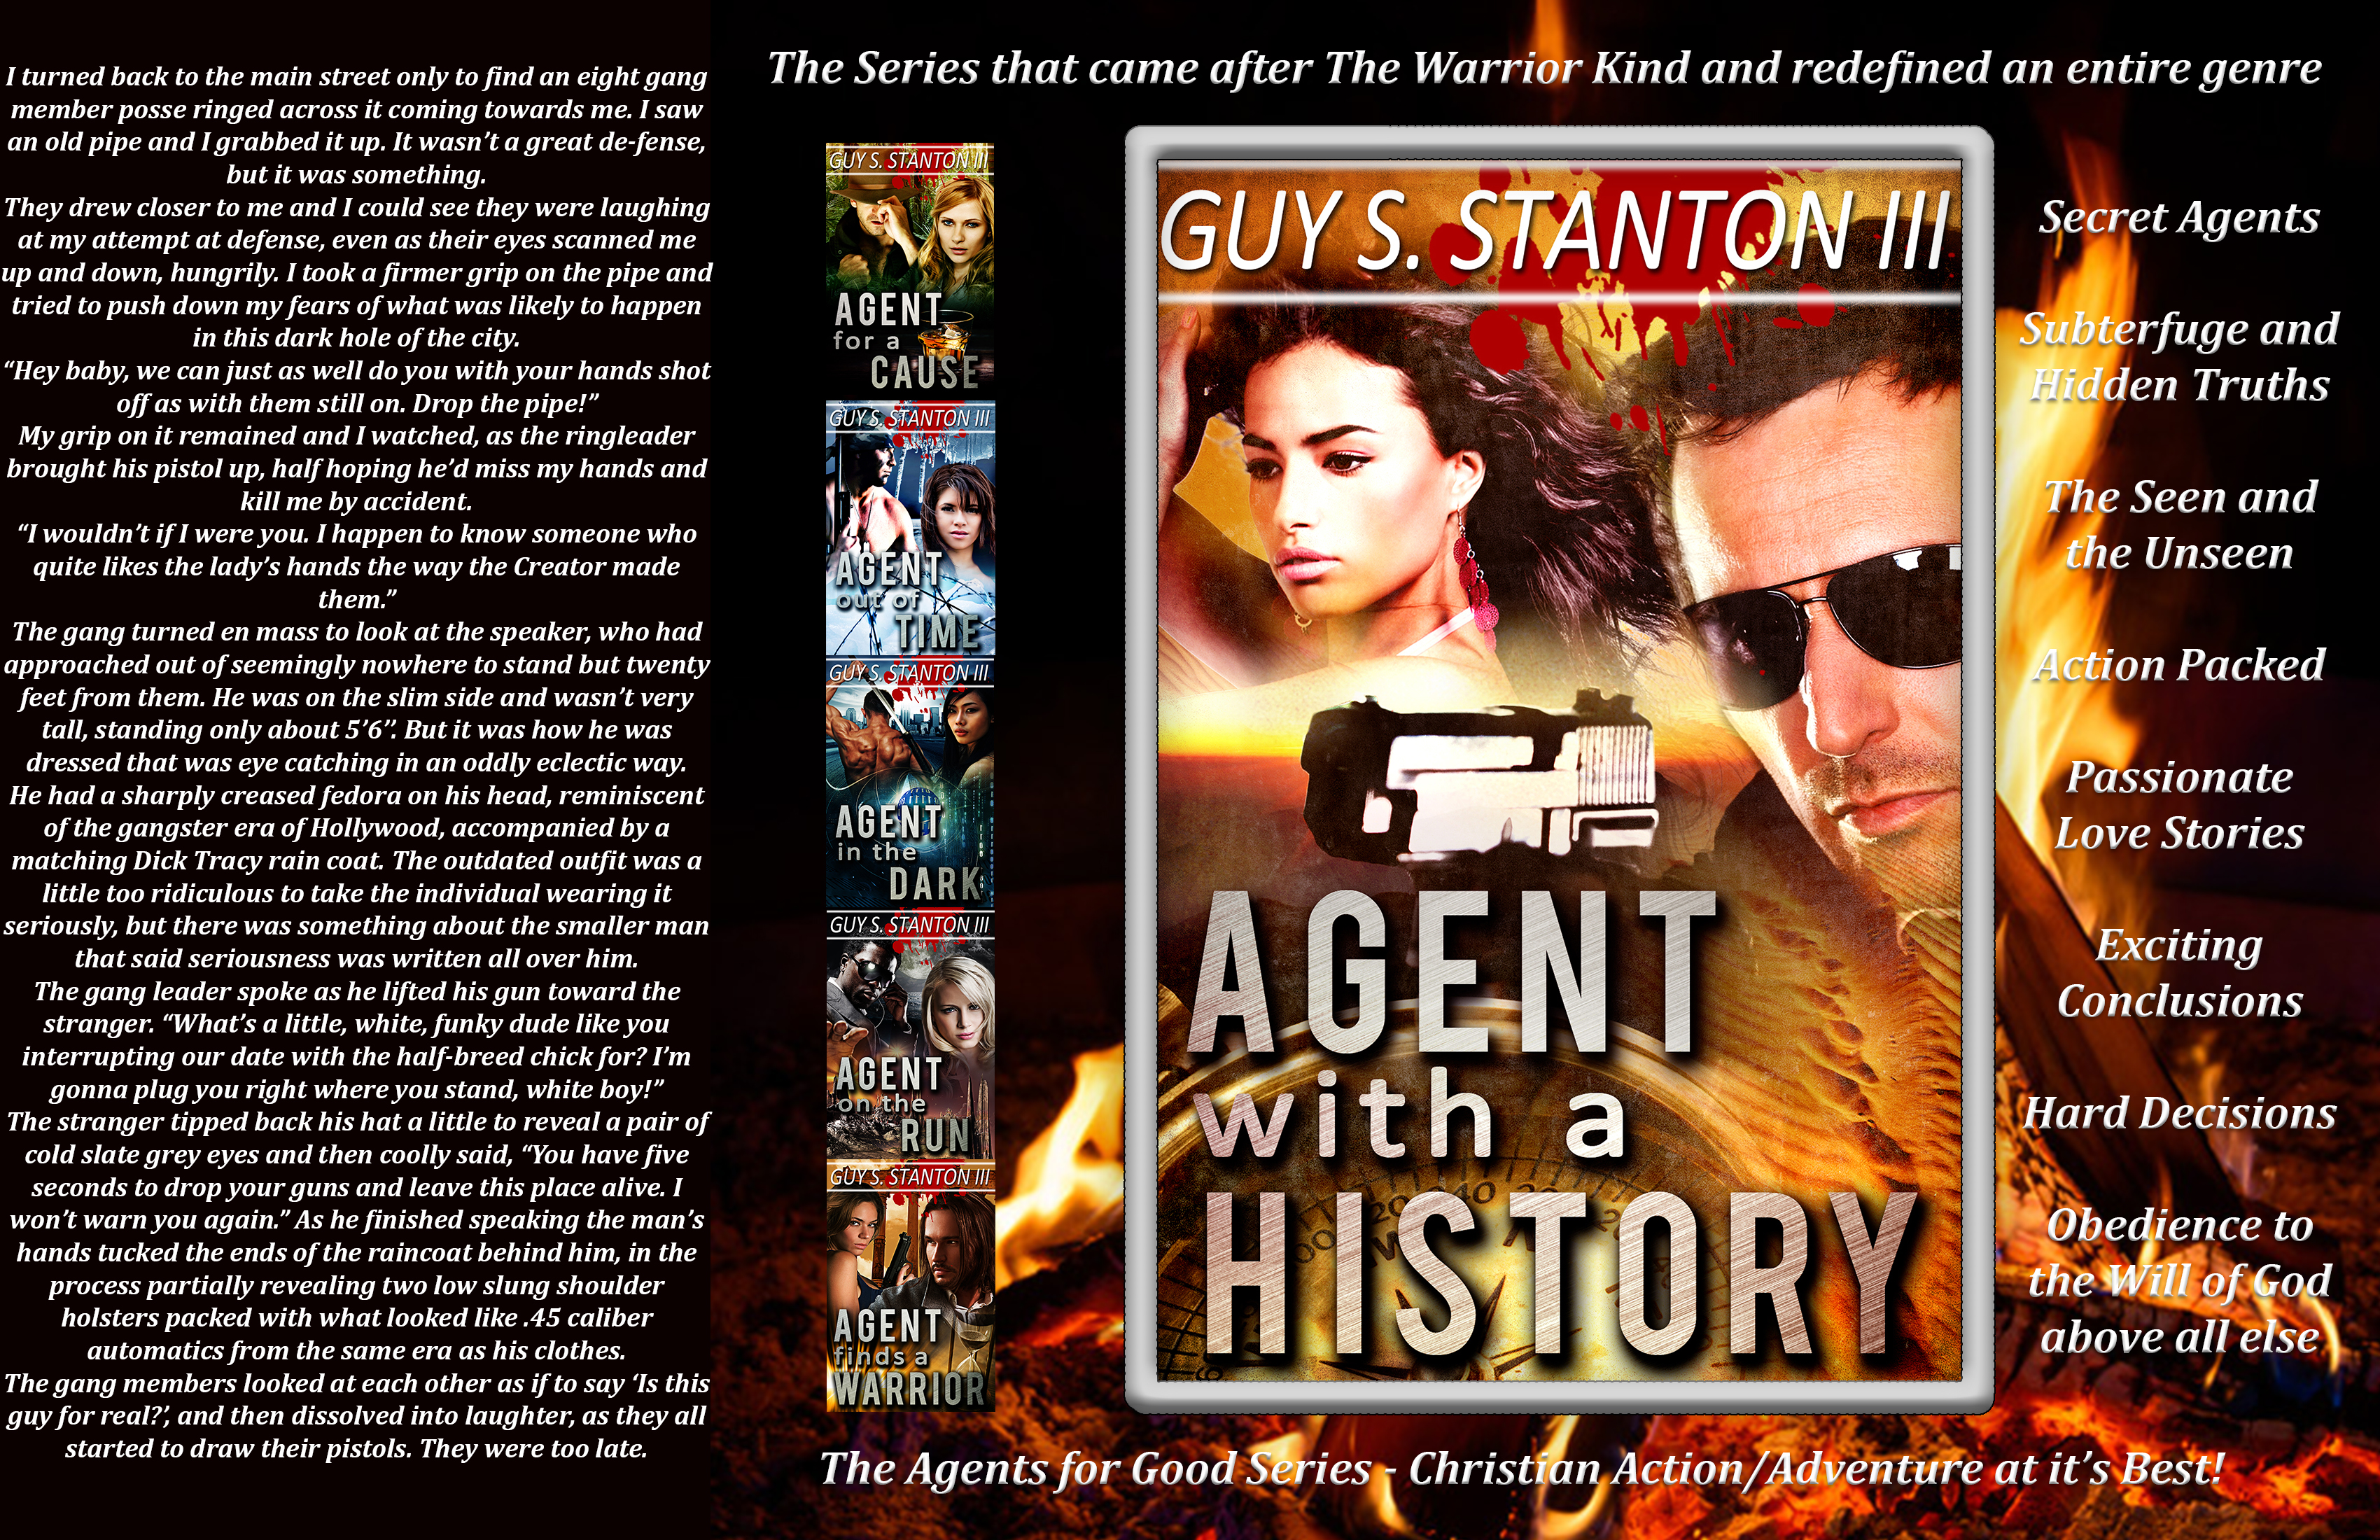 The Agents for Good series